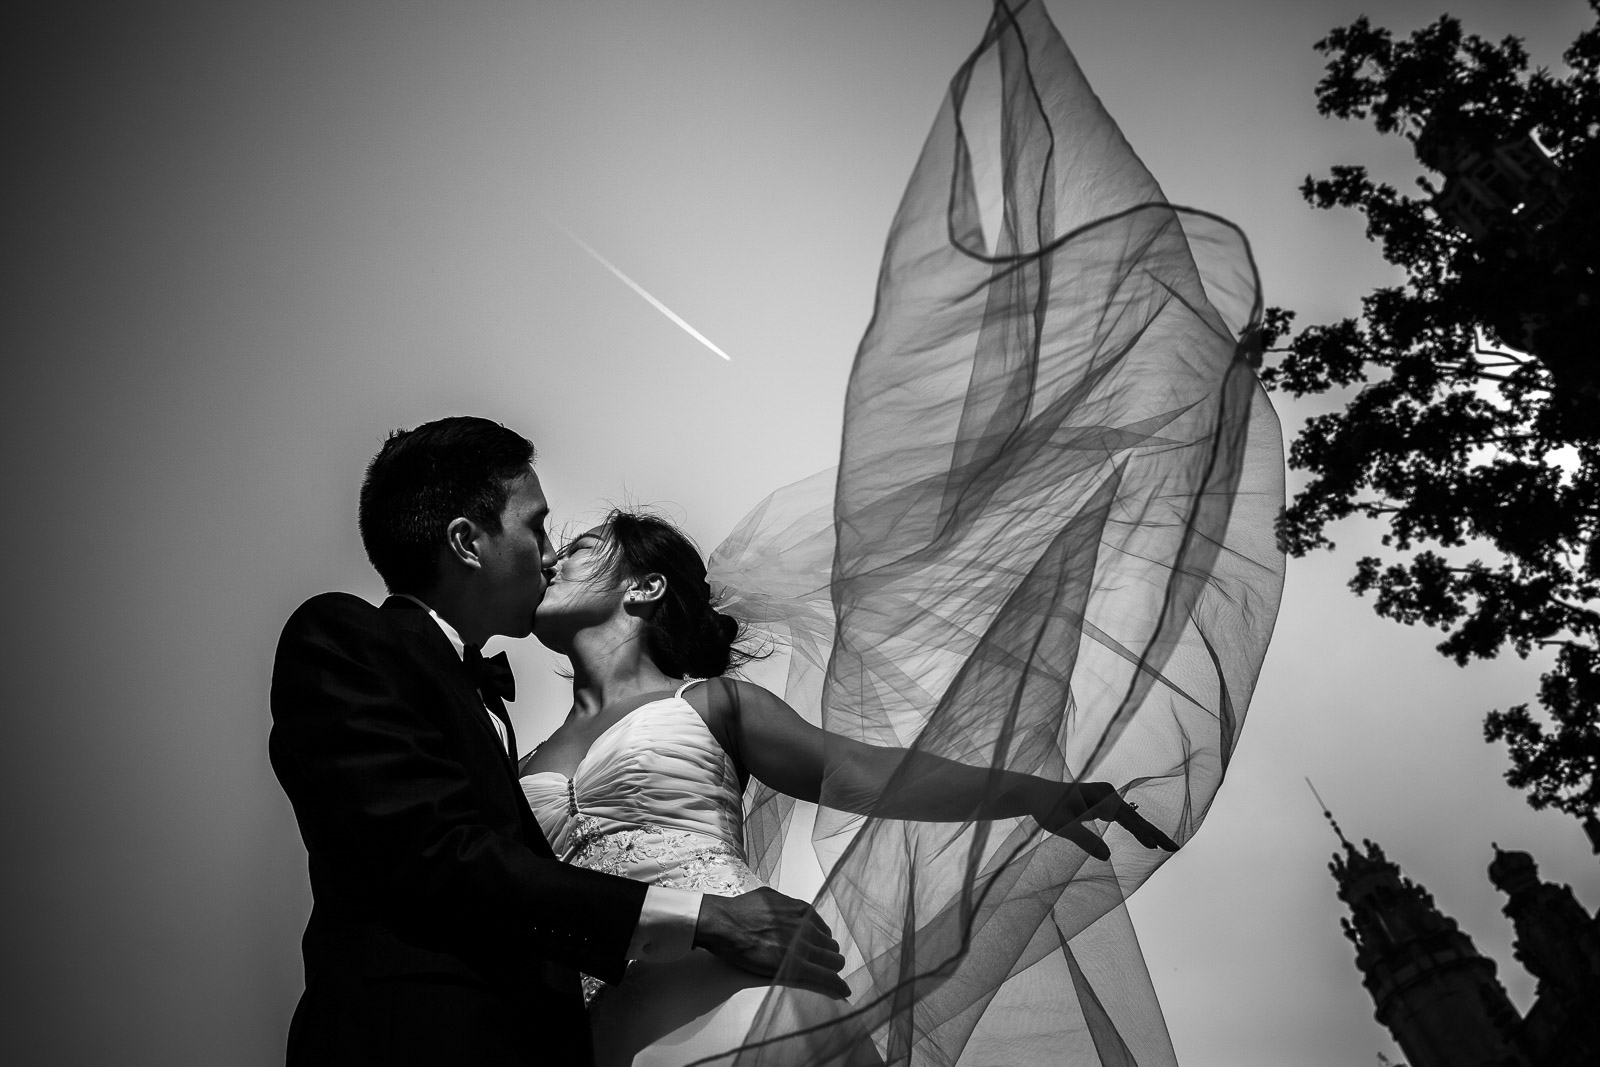 Barcelona, Spain Wedding Photographer - Cesc Giralt · Casual Wedding Photography